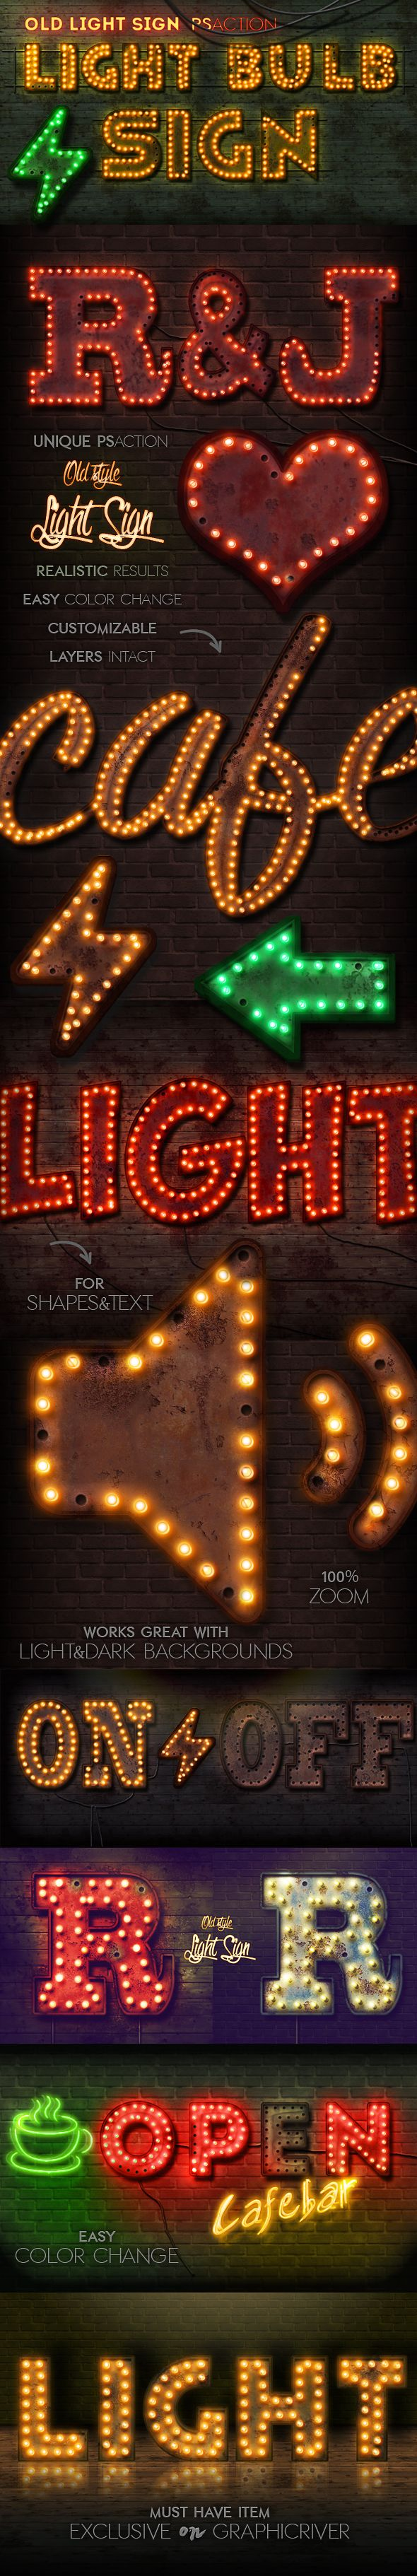 Old light sign photoshop action neon style photoshop and neon old light sign photoshop action photoshop abr light style neon photoshop text baditri Image collections